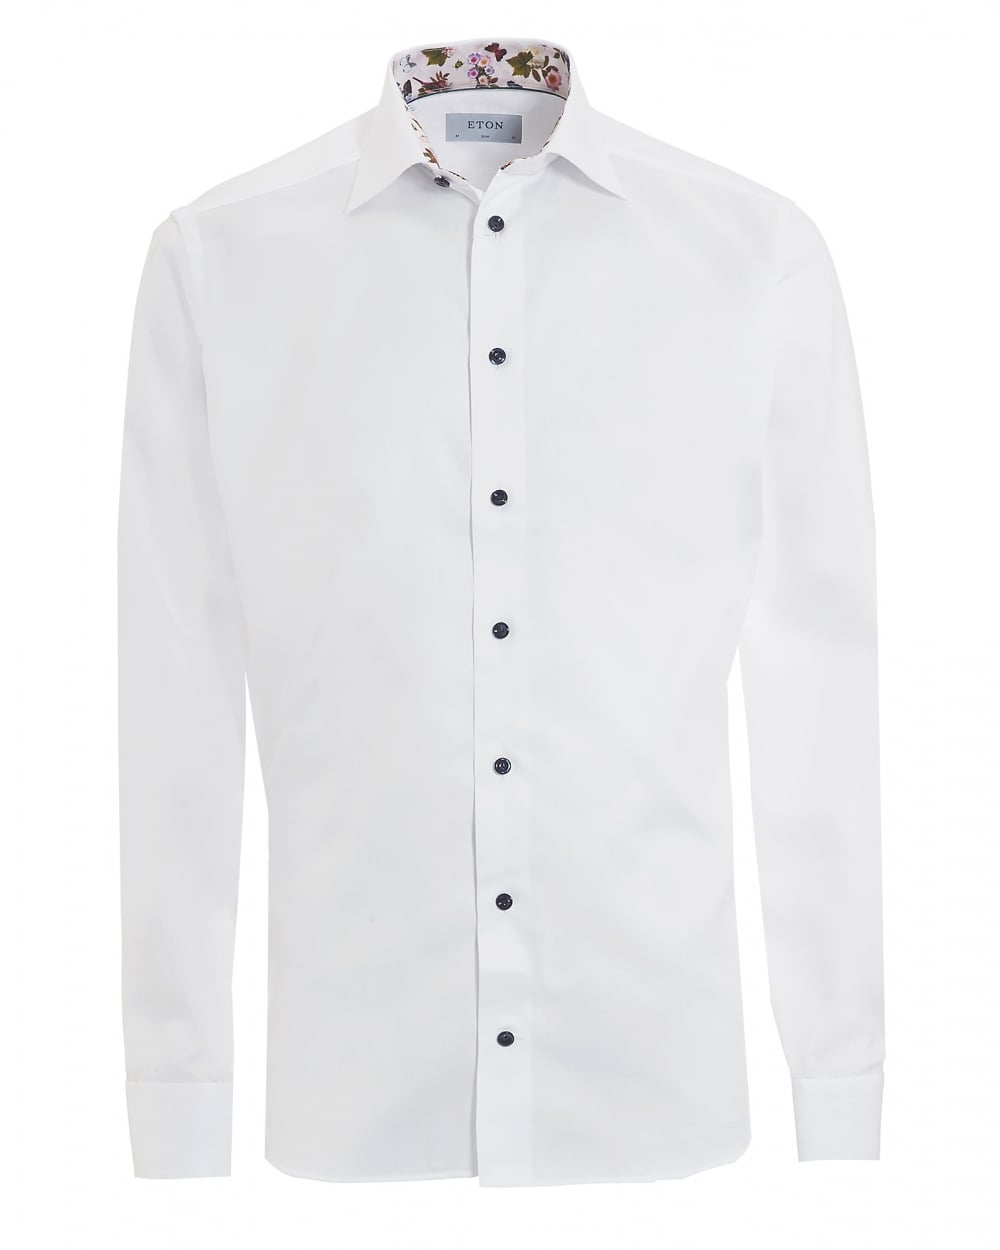 Eton Shirts Mens Patterned Trim Slim Fit White Shirt